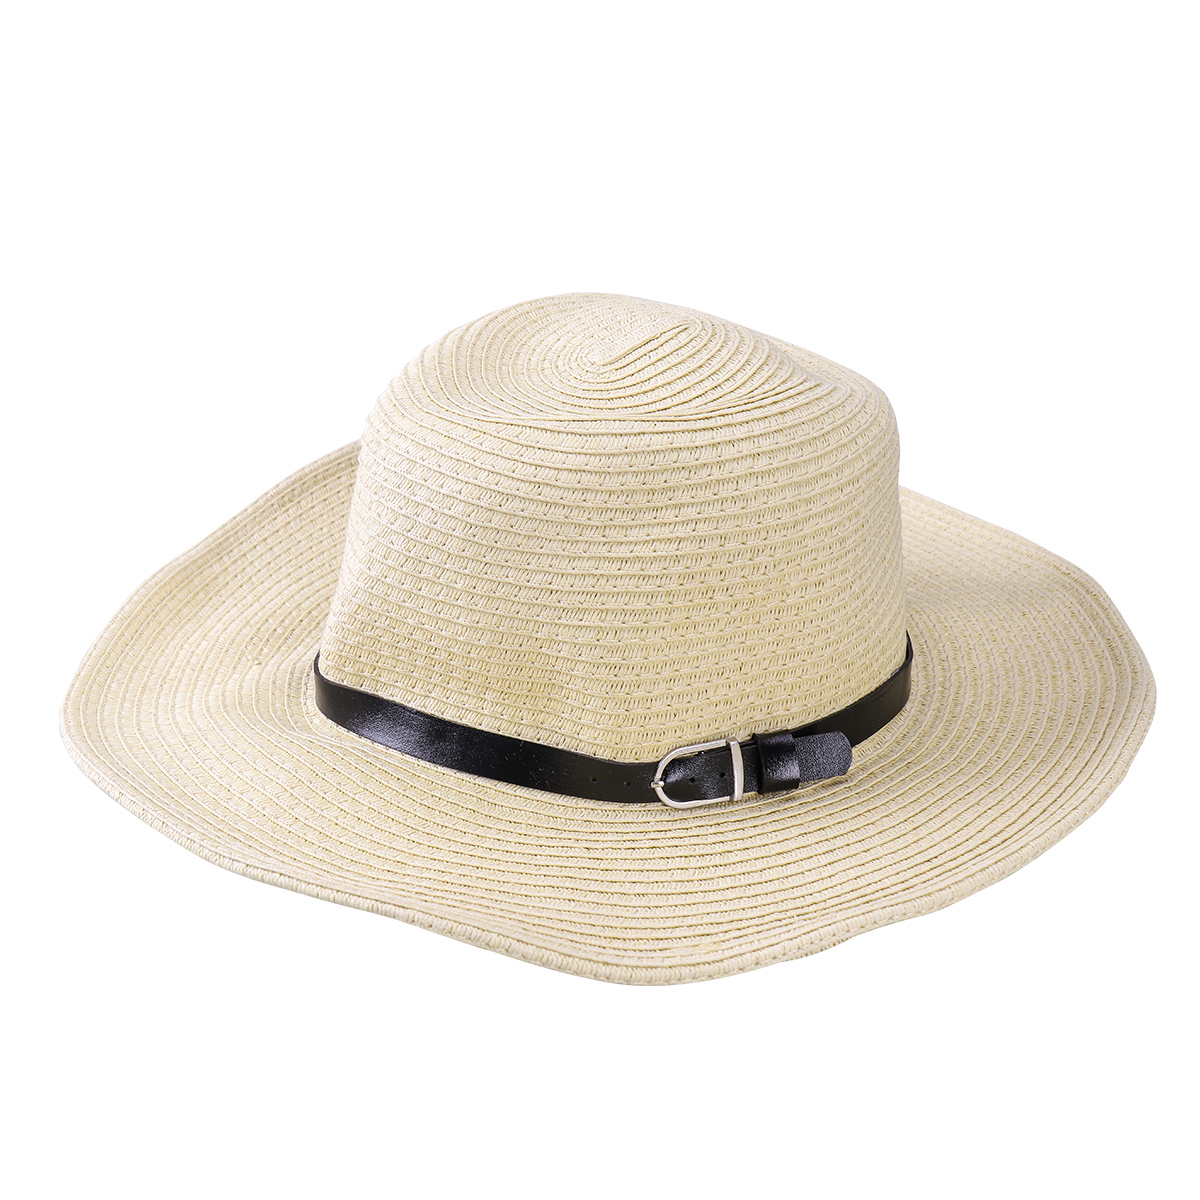 TINKSKY Men Wide Brim Hat Summer Beach Straw Cap Sun Floppy Foldable Hats for Adults (Beige)